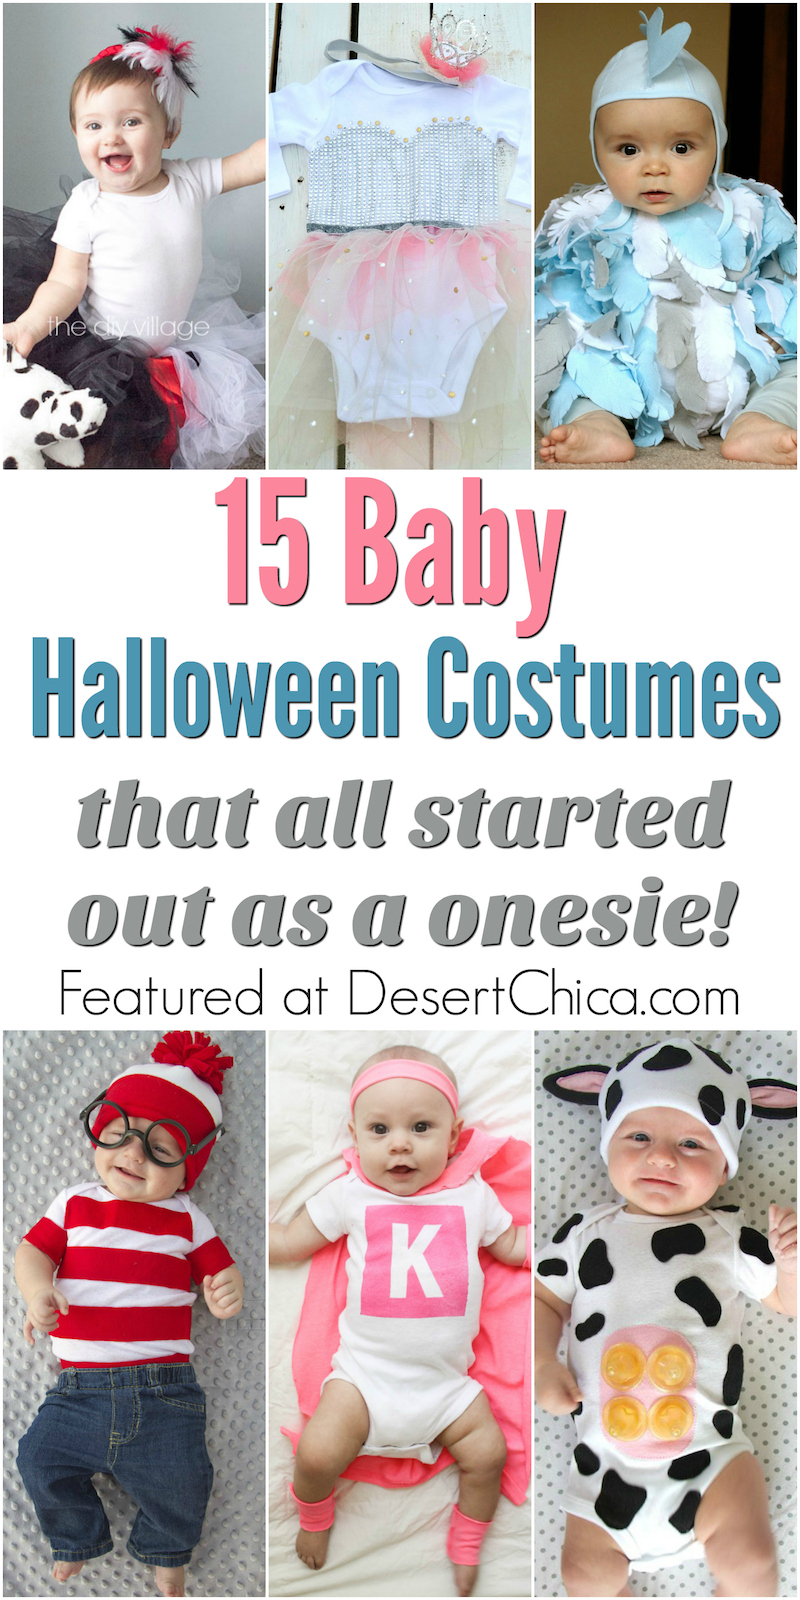 Every awesome costume starts with a great base, for a baby, a onesie makes the most sense for DIY Halloween costume ideas. Check out all these adorable onesie costumes for babies